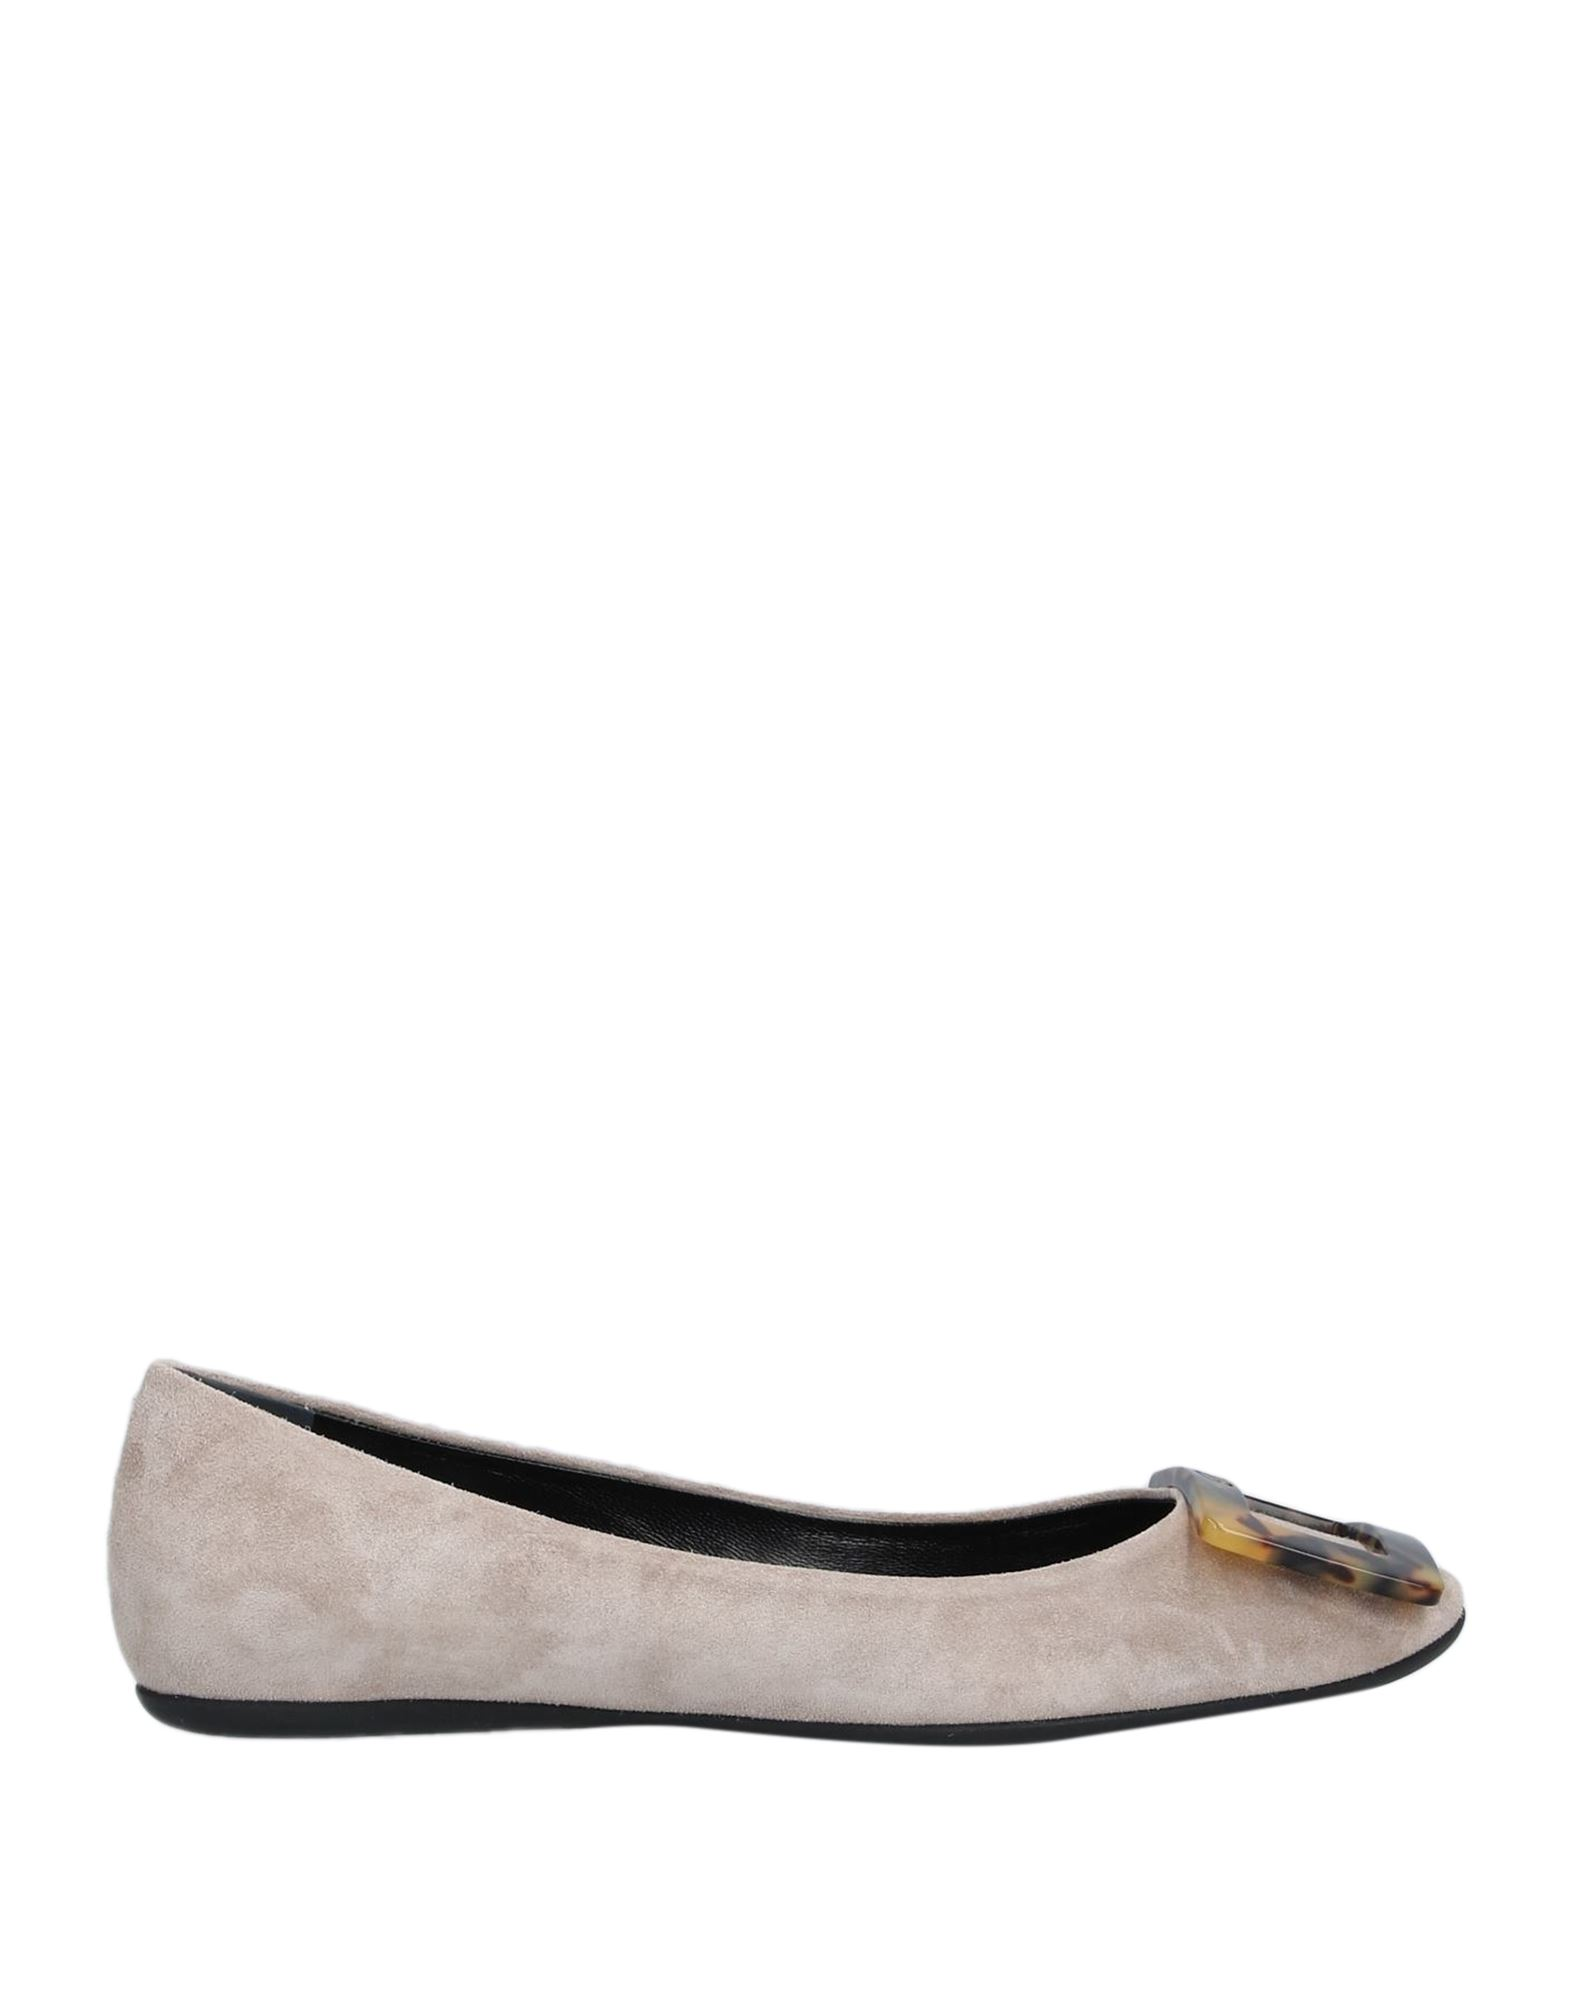 ROGER VIVIER Ballet flats. sueded effect, logo, contrasting applications, solid color, flat, round toeline, leather lining, rubber cleated sole, contains non-textile parts of animal origin. Soft Leather